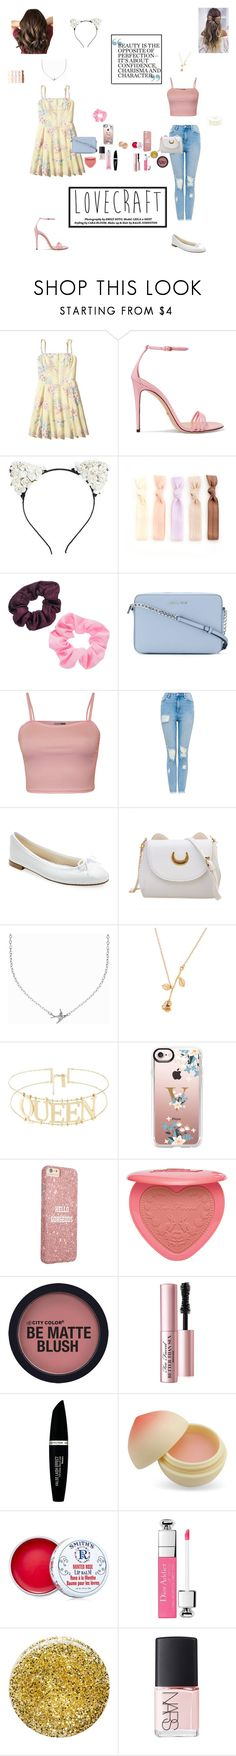 """Rapunzel Style💗"" by kkramer51 ❤ liked on Polyvore featuring Hollister Co., Gucci, Mudd, MICHAEL Michael Kors, WearAll, Repetto, Minnie Grace, Casetify, Too Faced Cosmetics and Max Factor"